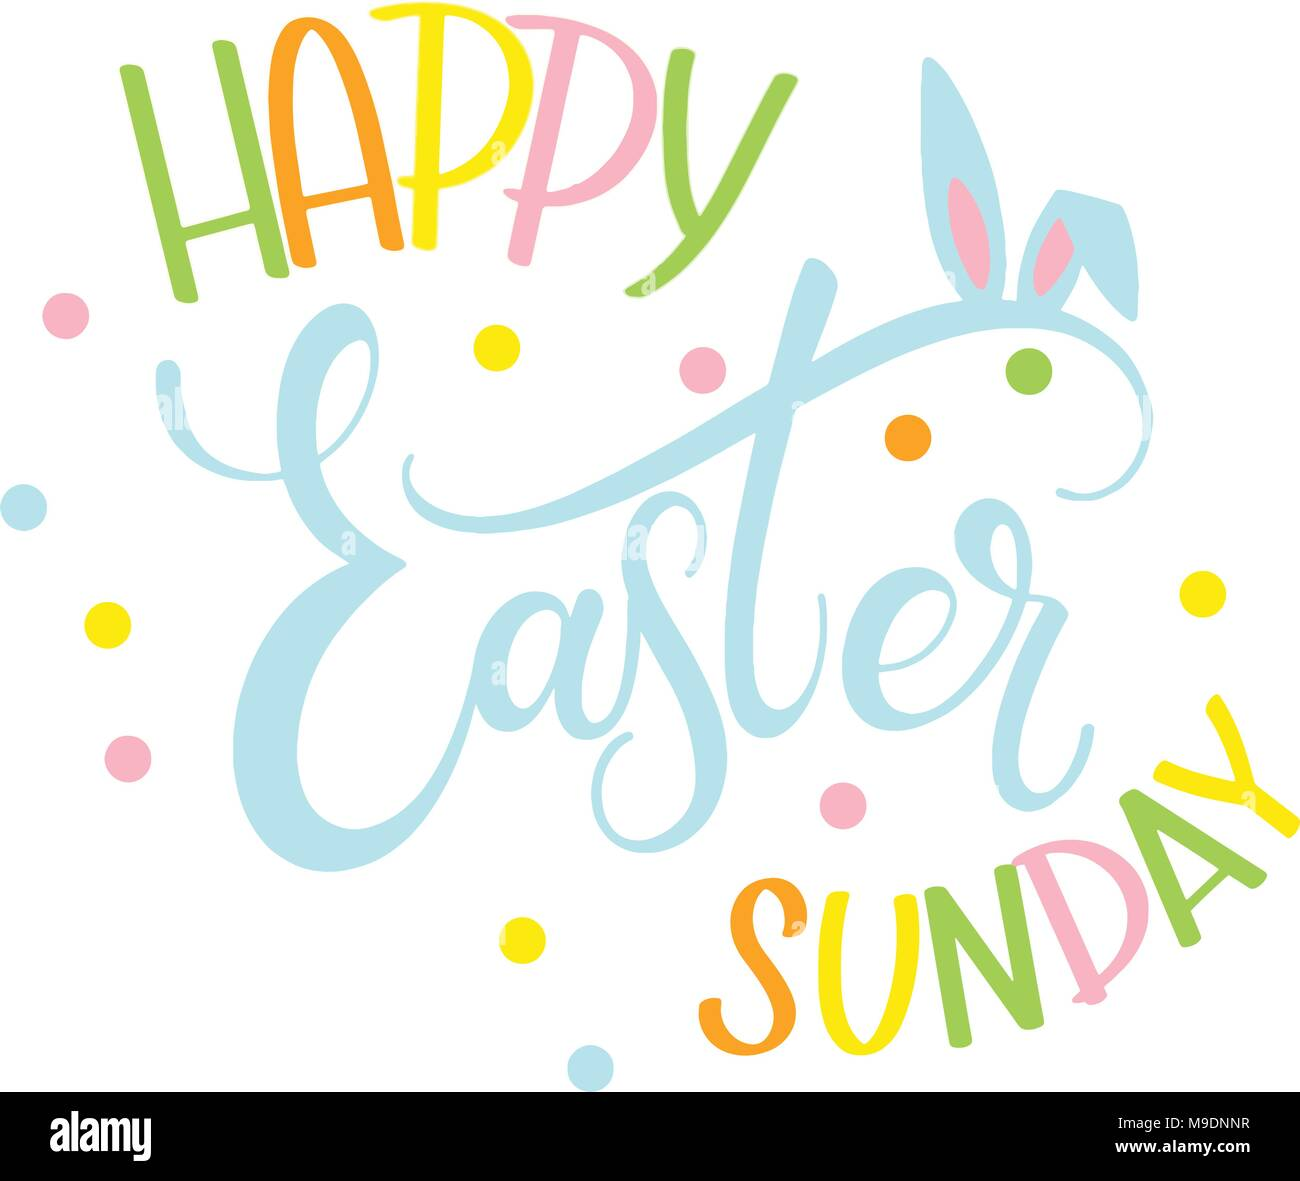 Happy Easter Sunday Colorful Lettering Hand Written Easter Phrases